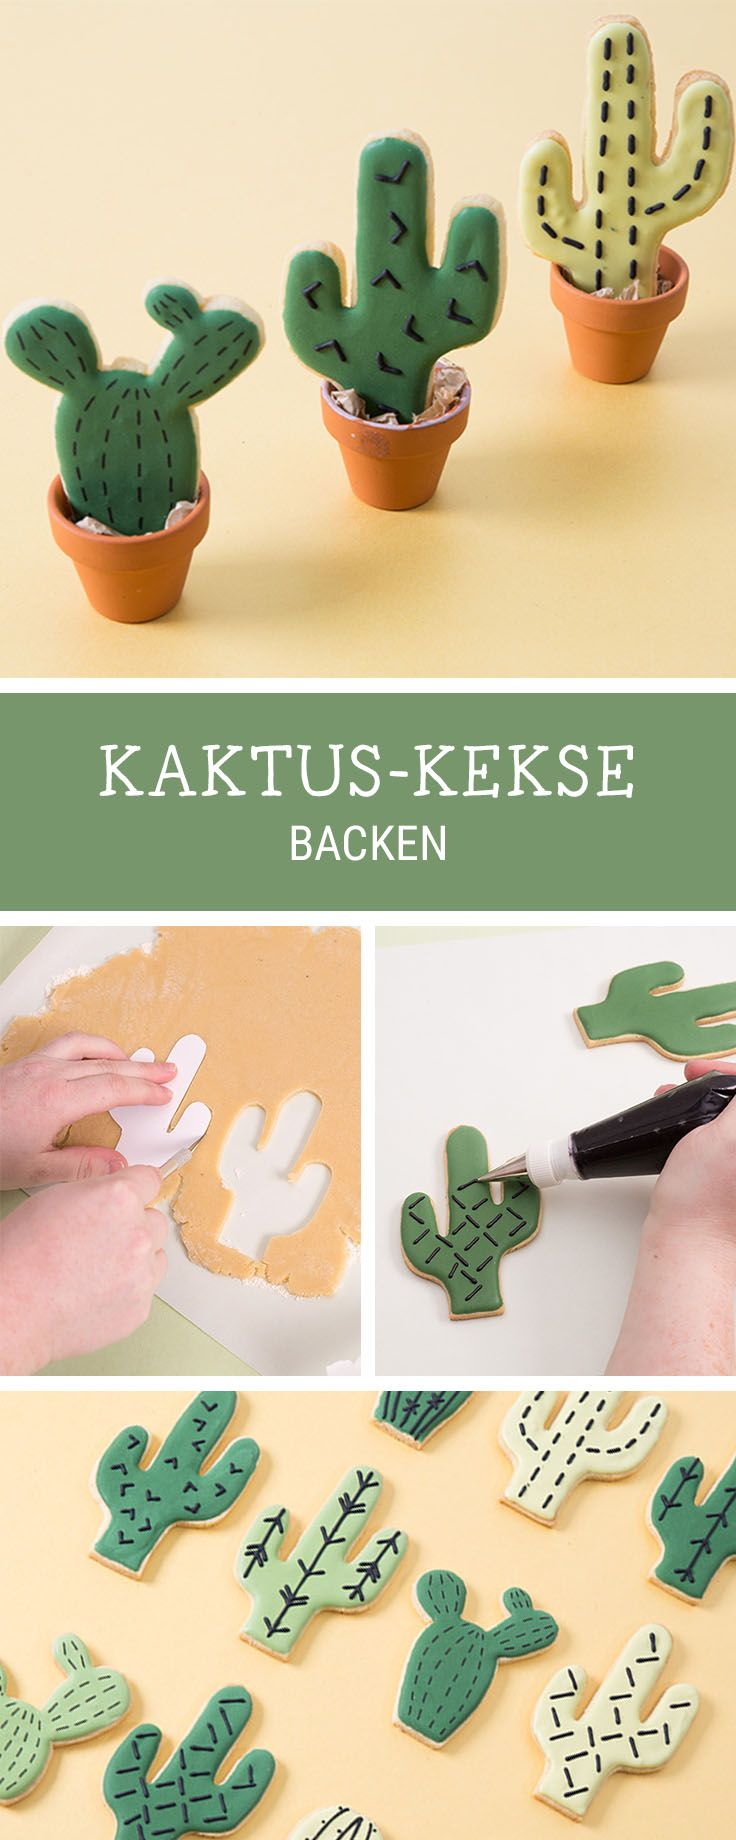 Süße Kaktus-Kekse backen, Partyrezepte / sweet recipe for cute cookies in shape of cacti, party food via DaWanda.com